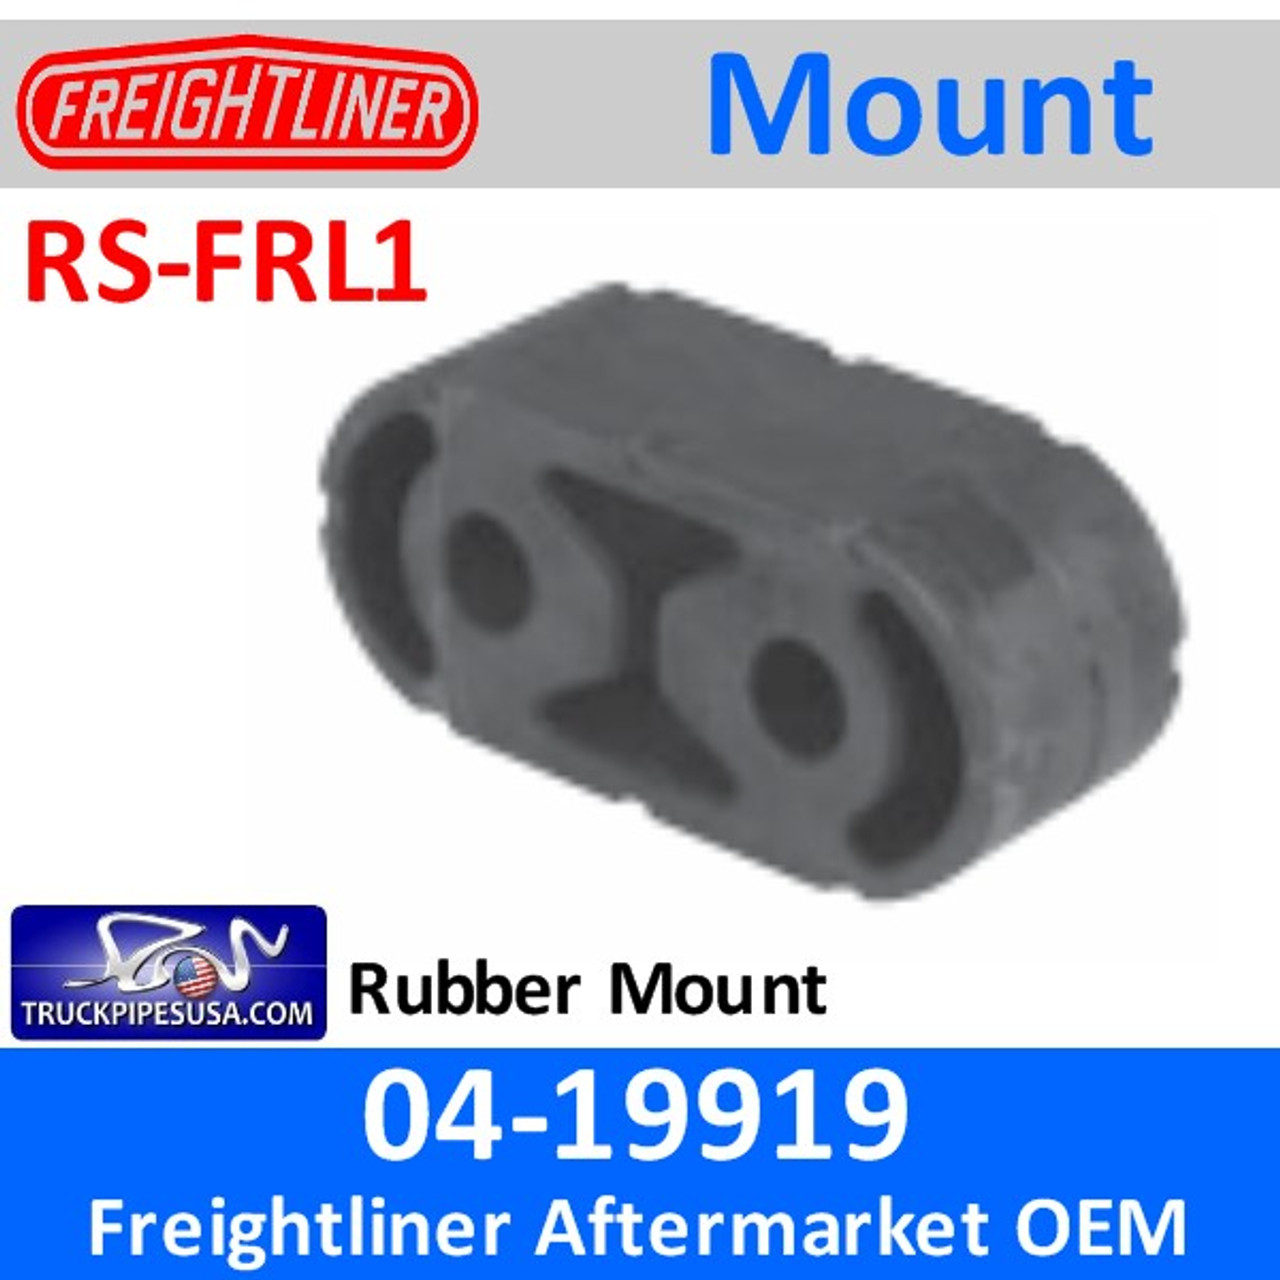 04-19919 Rubber Strap for 2004 & Newer Freightliner RS-FRL1